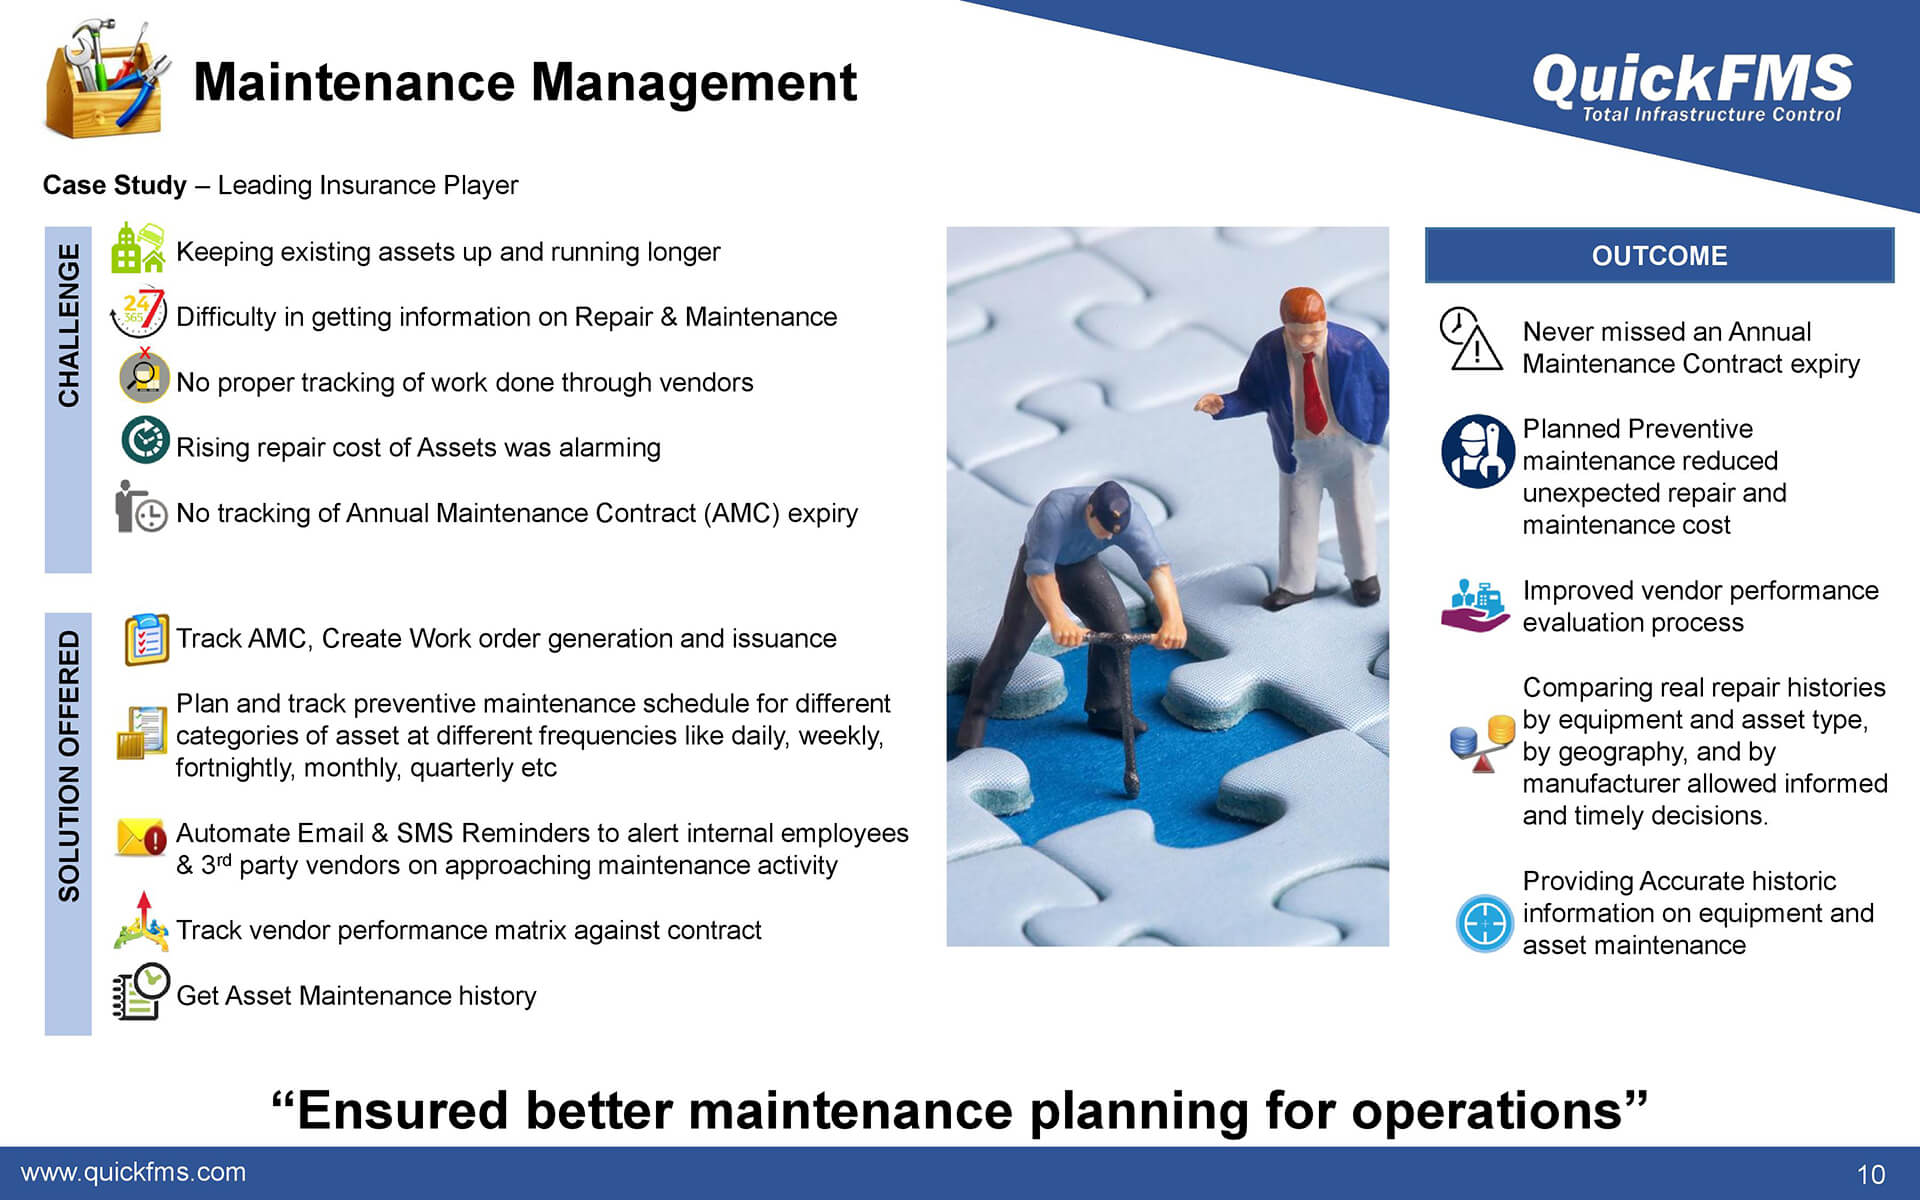 Overview presentation on Maintenance Management - QuickFMS